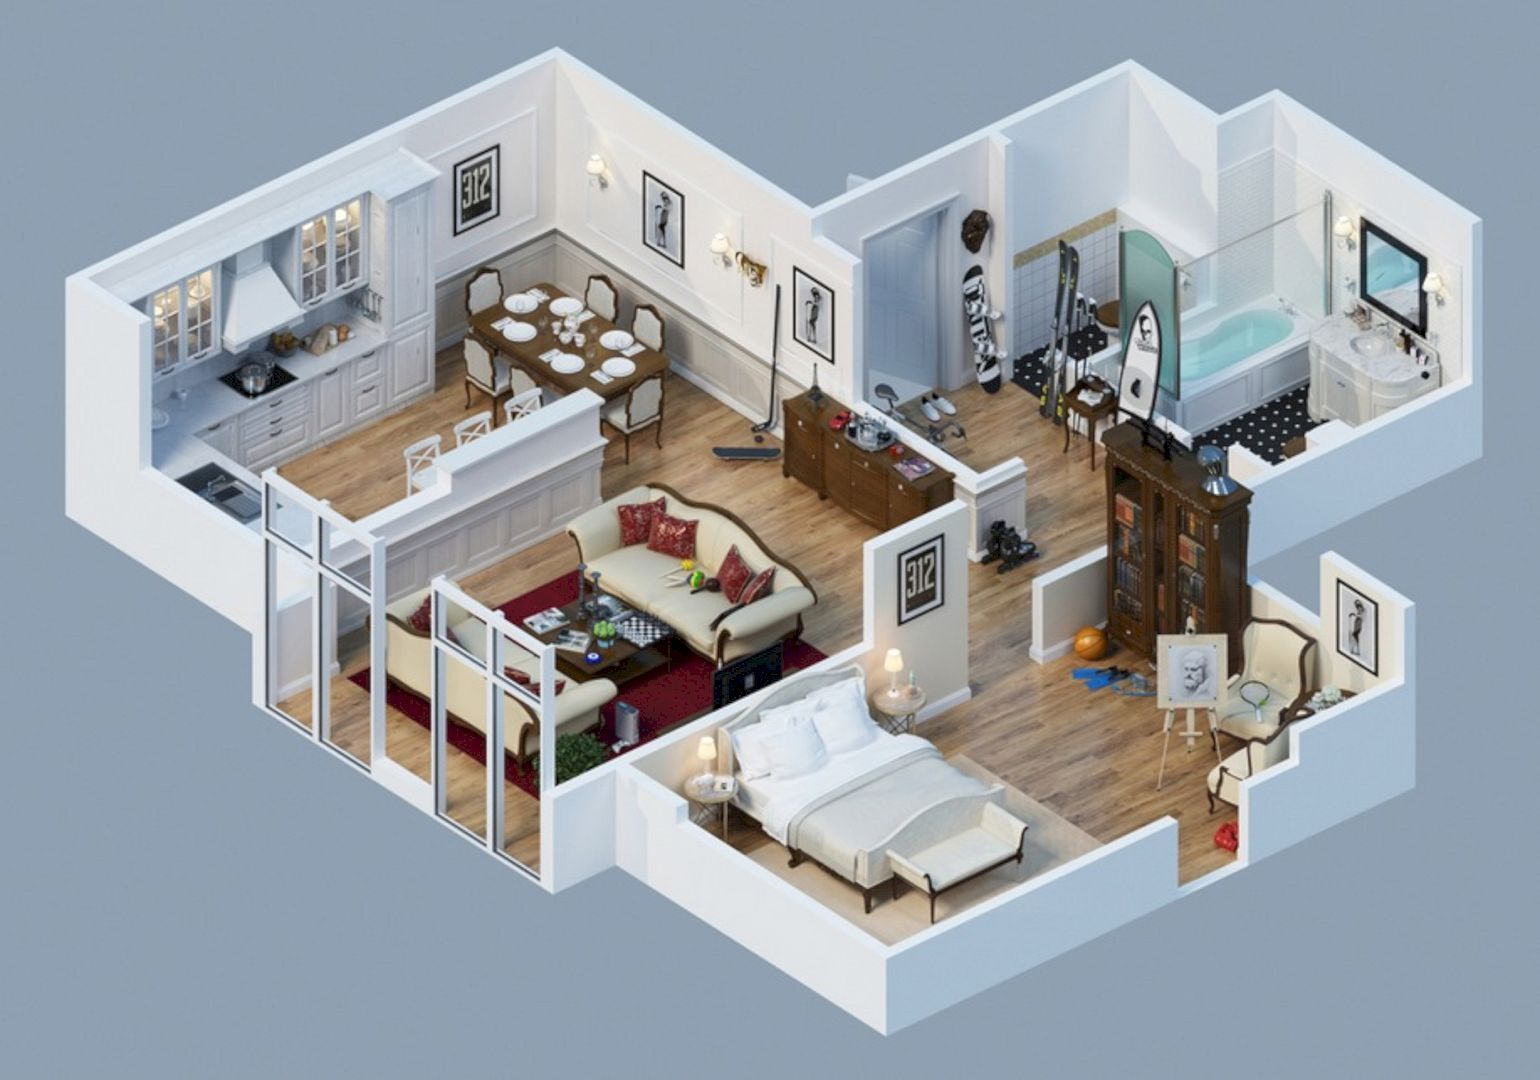 Why Do We Need 3d House Plan Before Starting The Project Home Design Plans 3d House Plans Victorian Apartment